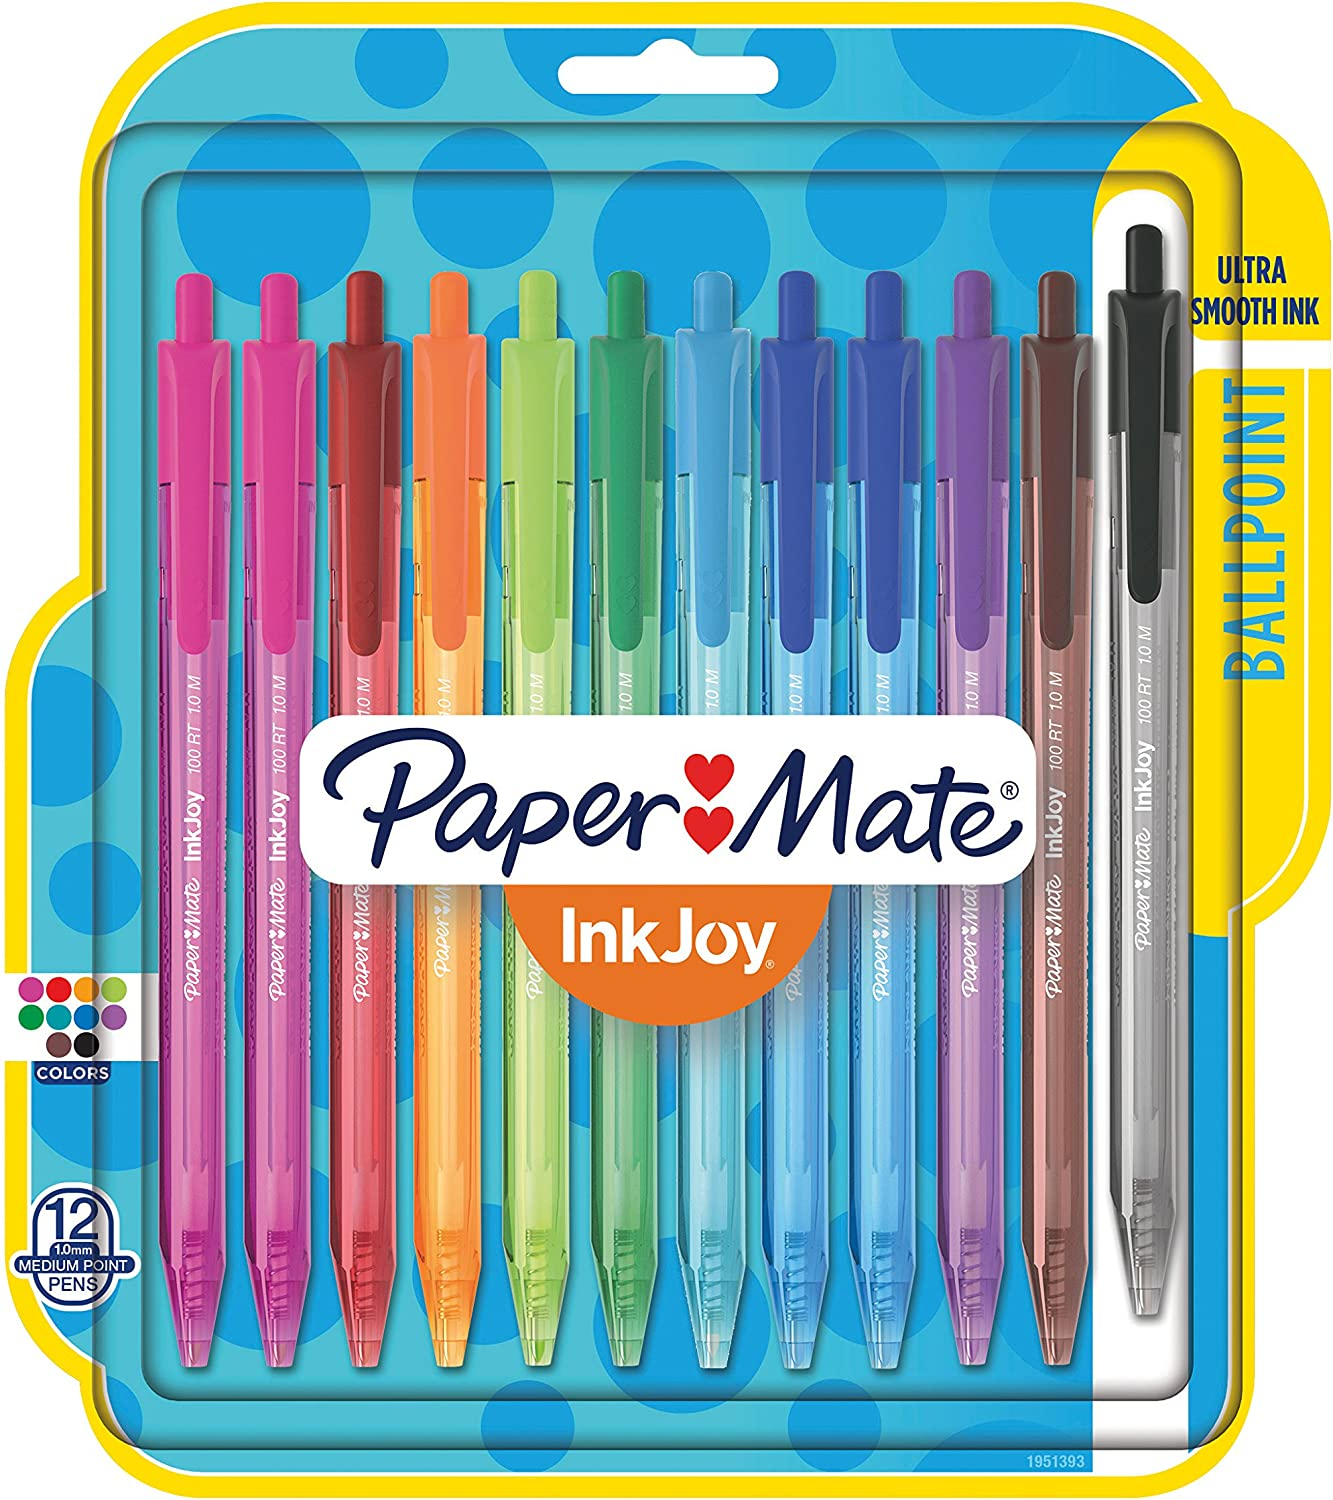 2 X Papermate InkJoy Ballpoint  1.0mm Medium Stylo 4 in a Pack